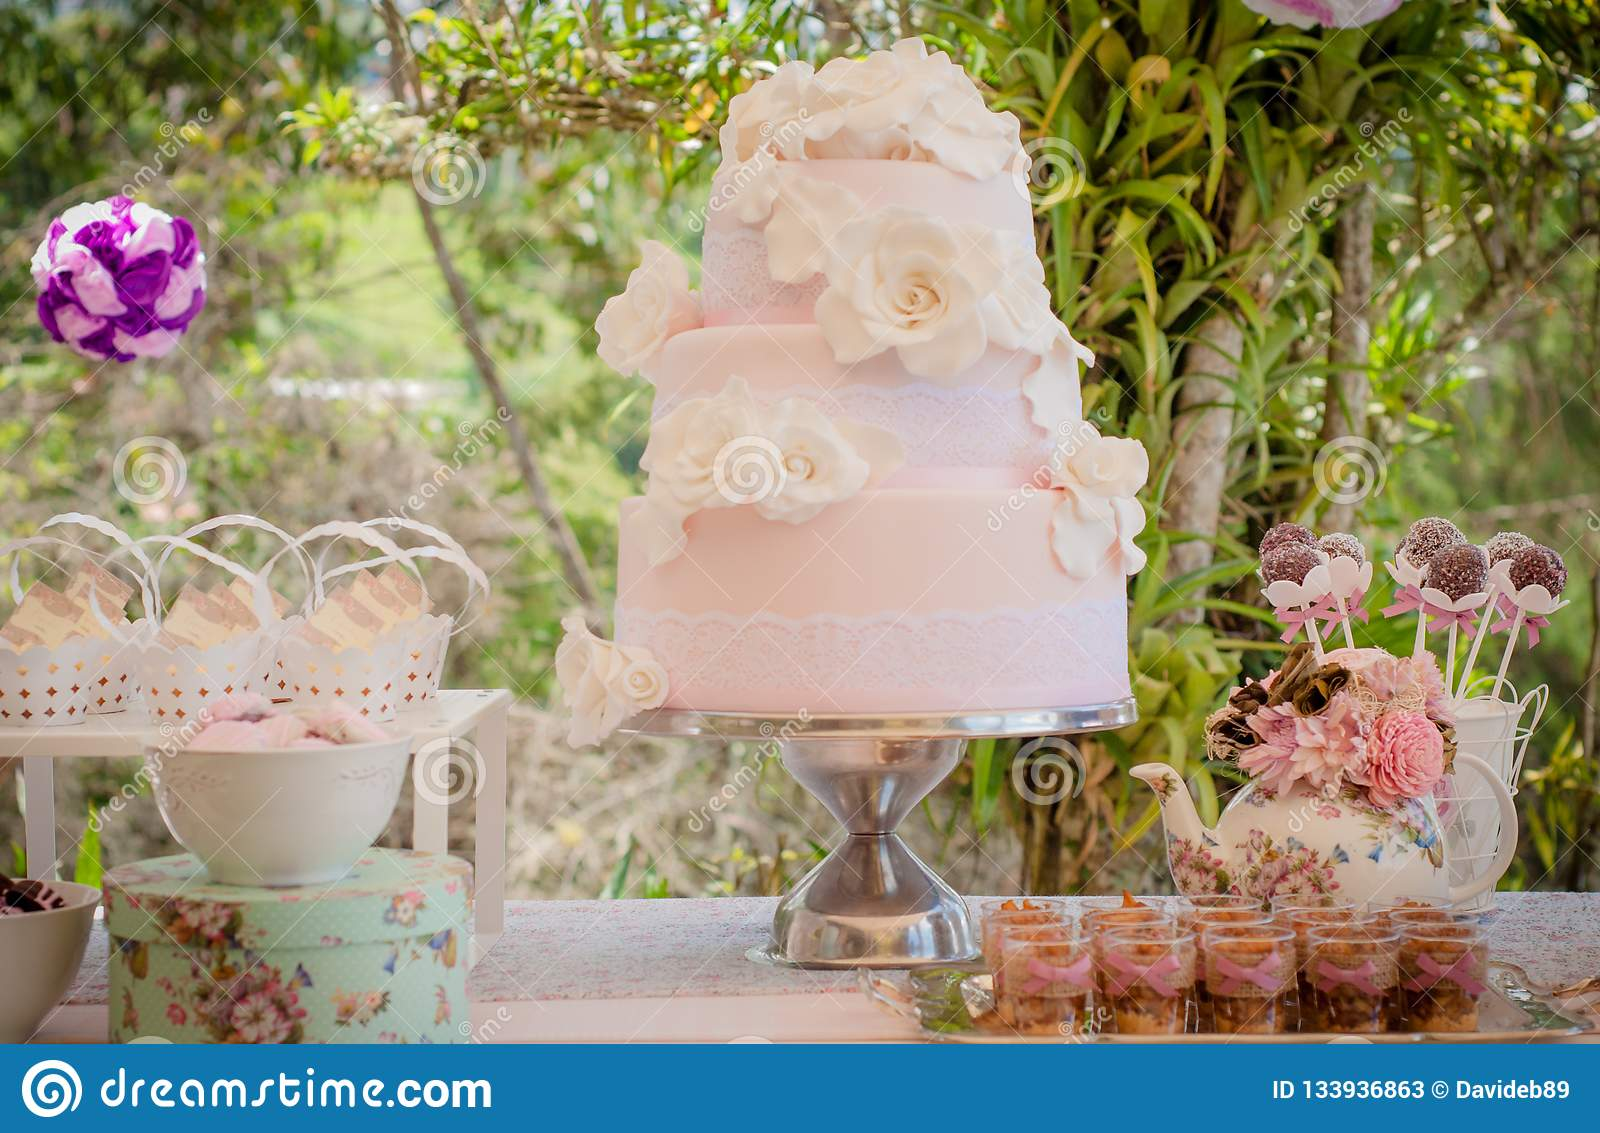 Shabby Chic Colors Style : Outdoors wedding cake and plumcakes with shabby chic style pink